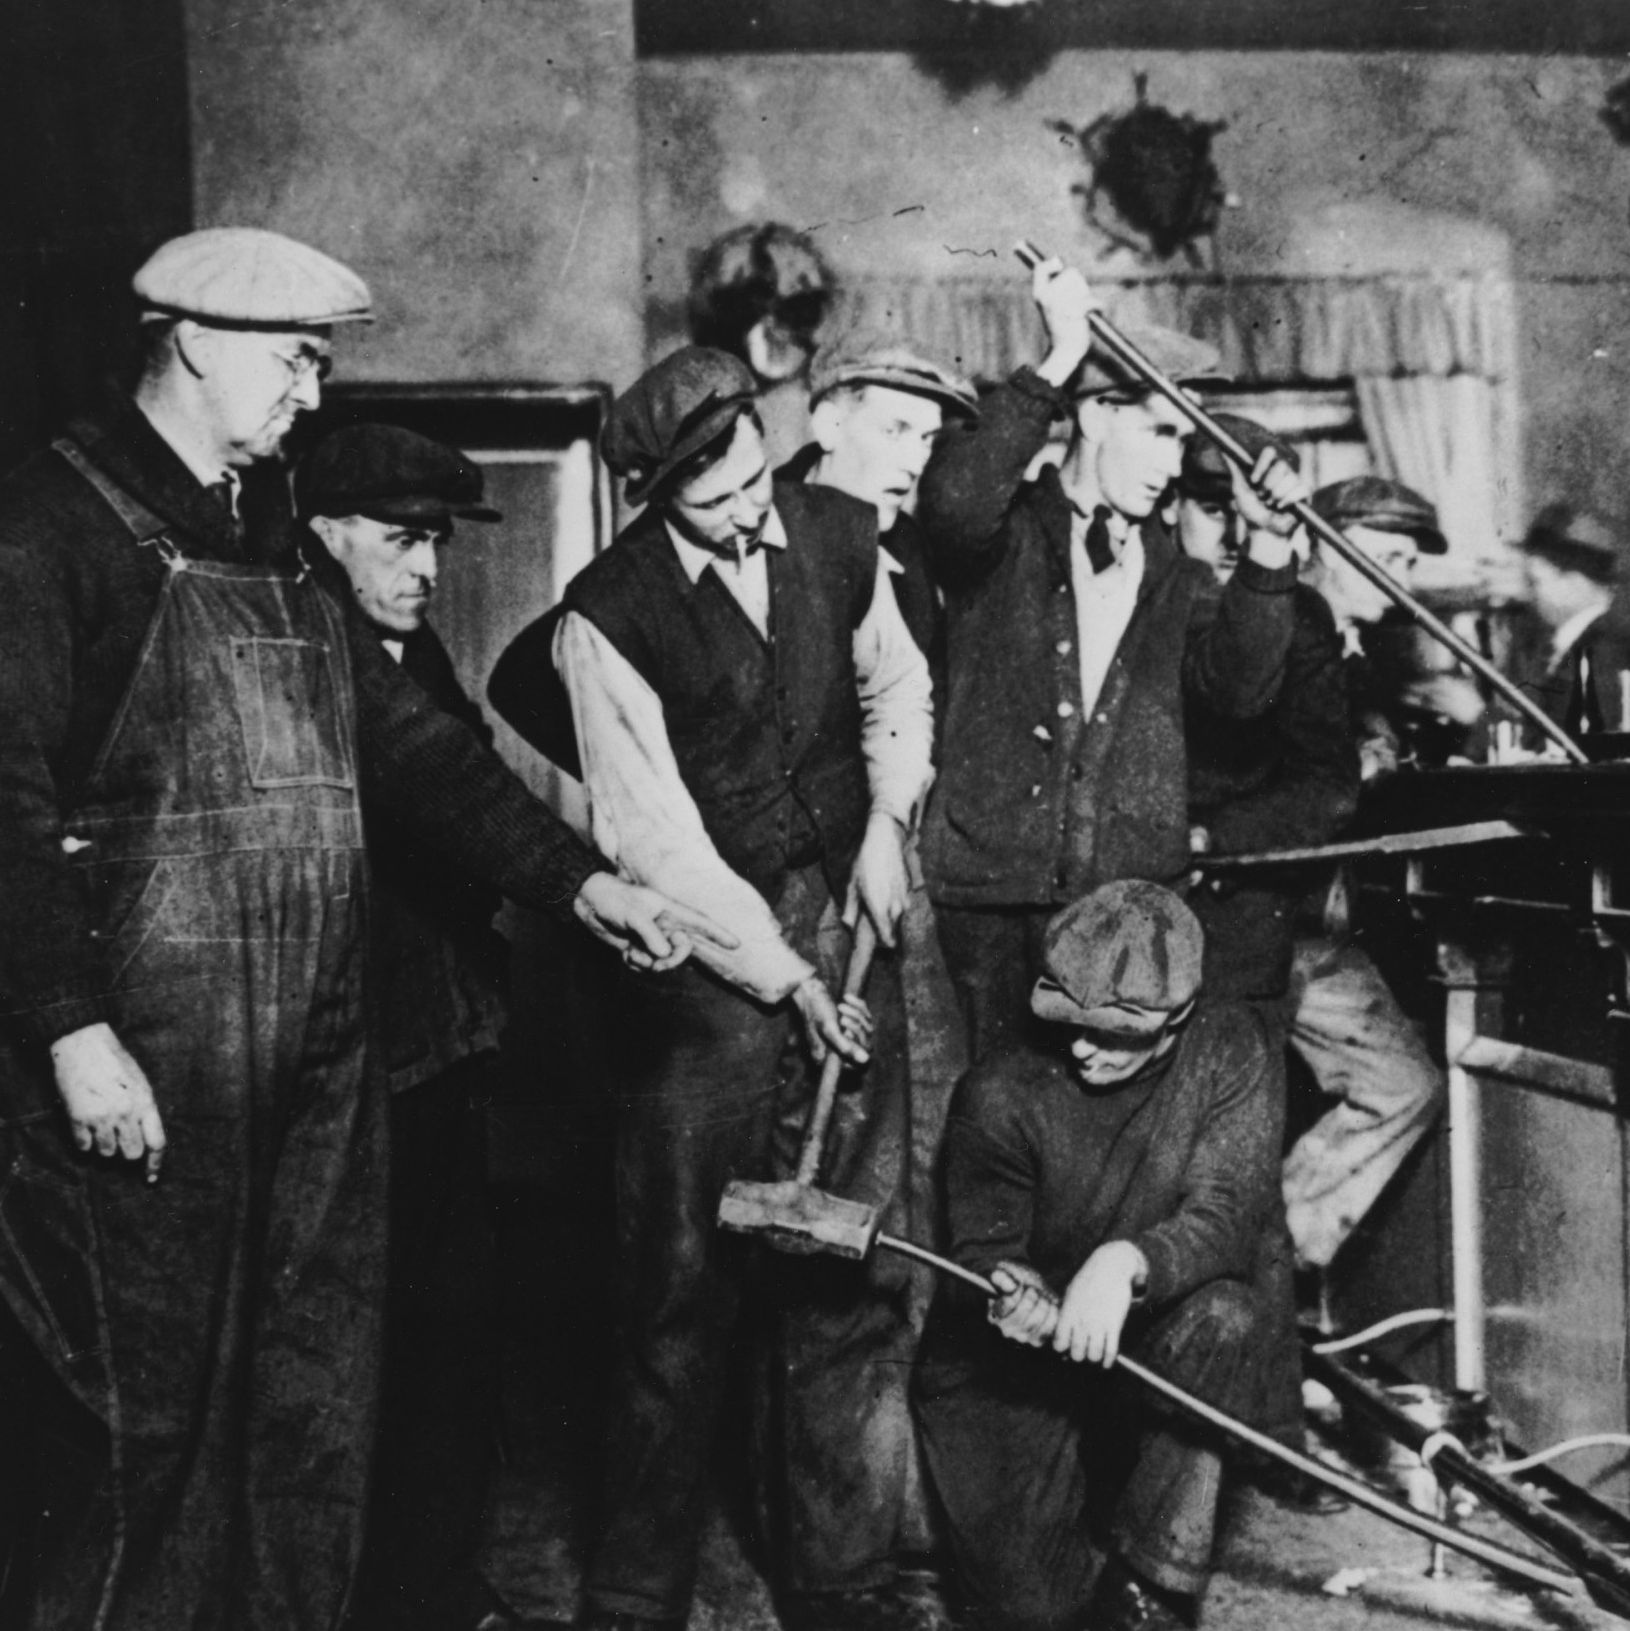 Photograph of Prohibition Agents Destroying a Bar